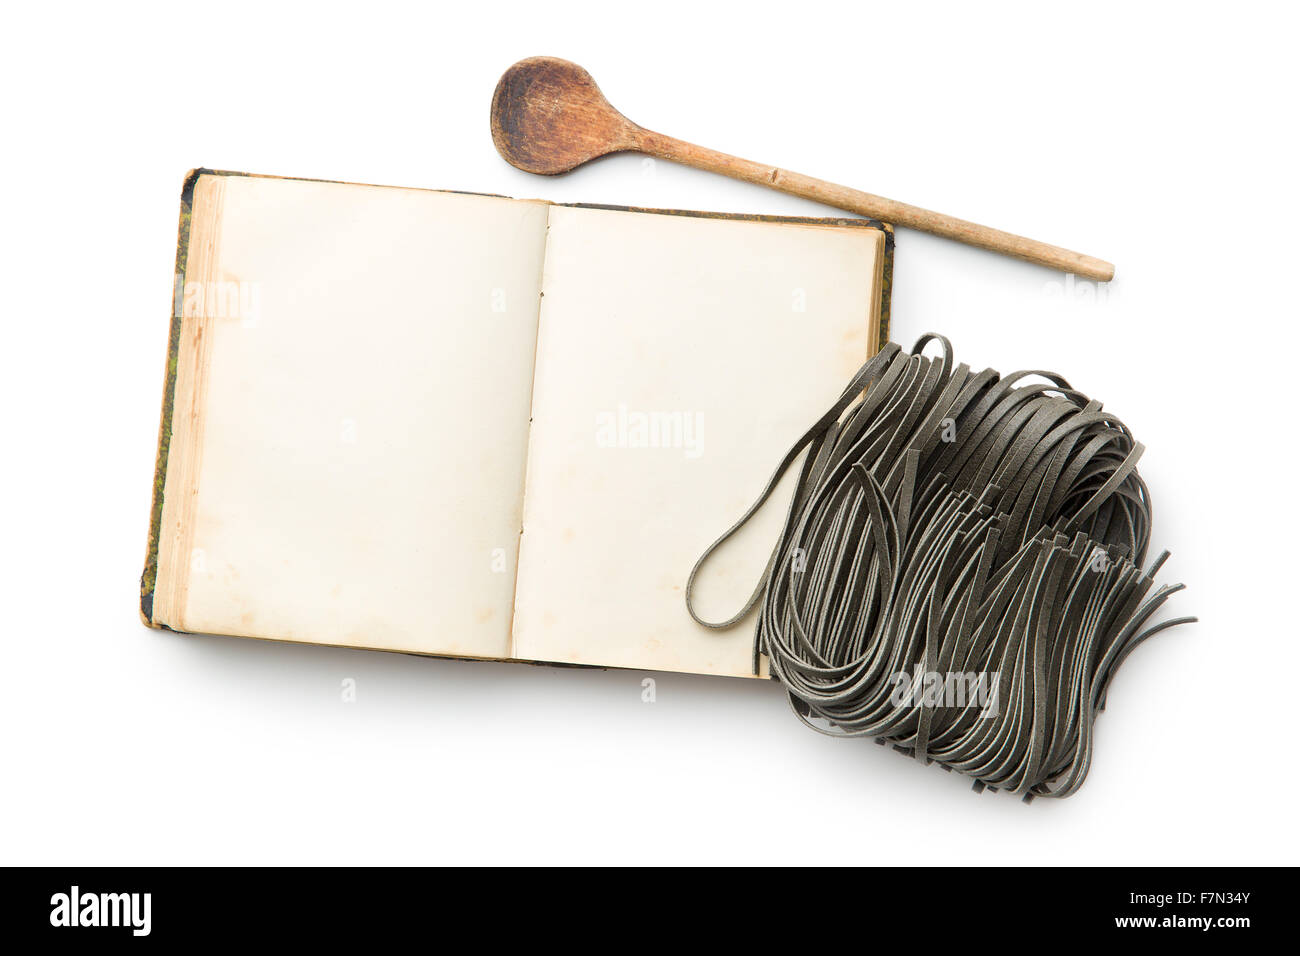 cookbook and black noodles with squid sepia ink on white background - Stock Image